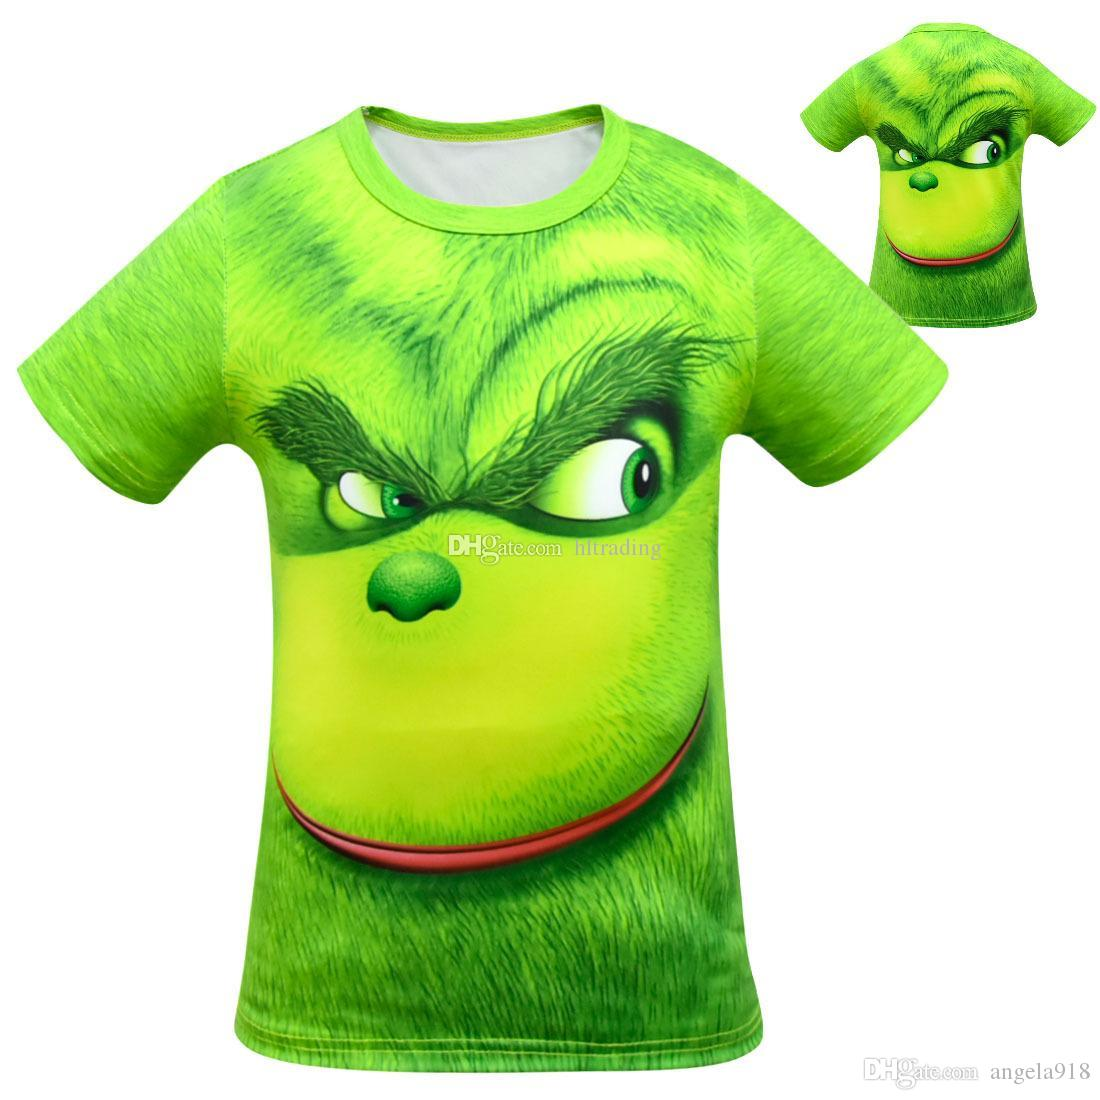 57492435 2019 Baby Boys The Grinch Print T Shirts Summer Short Sleeve Tops Cartoon  Children Tees Kids Clothing C5678 From Angela918, $5.0 | DHgate.Com